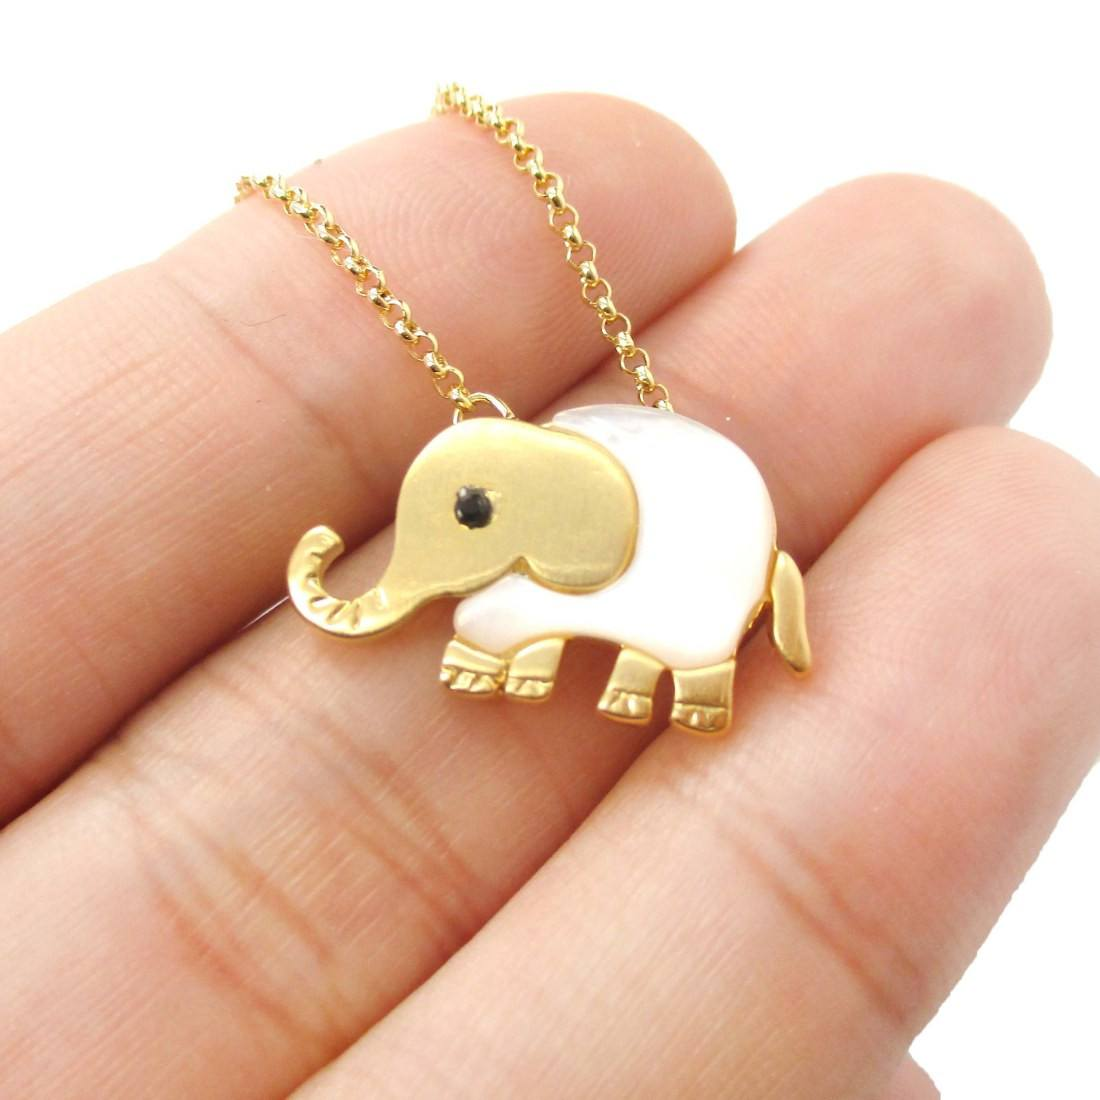 Baby Elephant Shaped Animal Charm Necklace in Gold